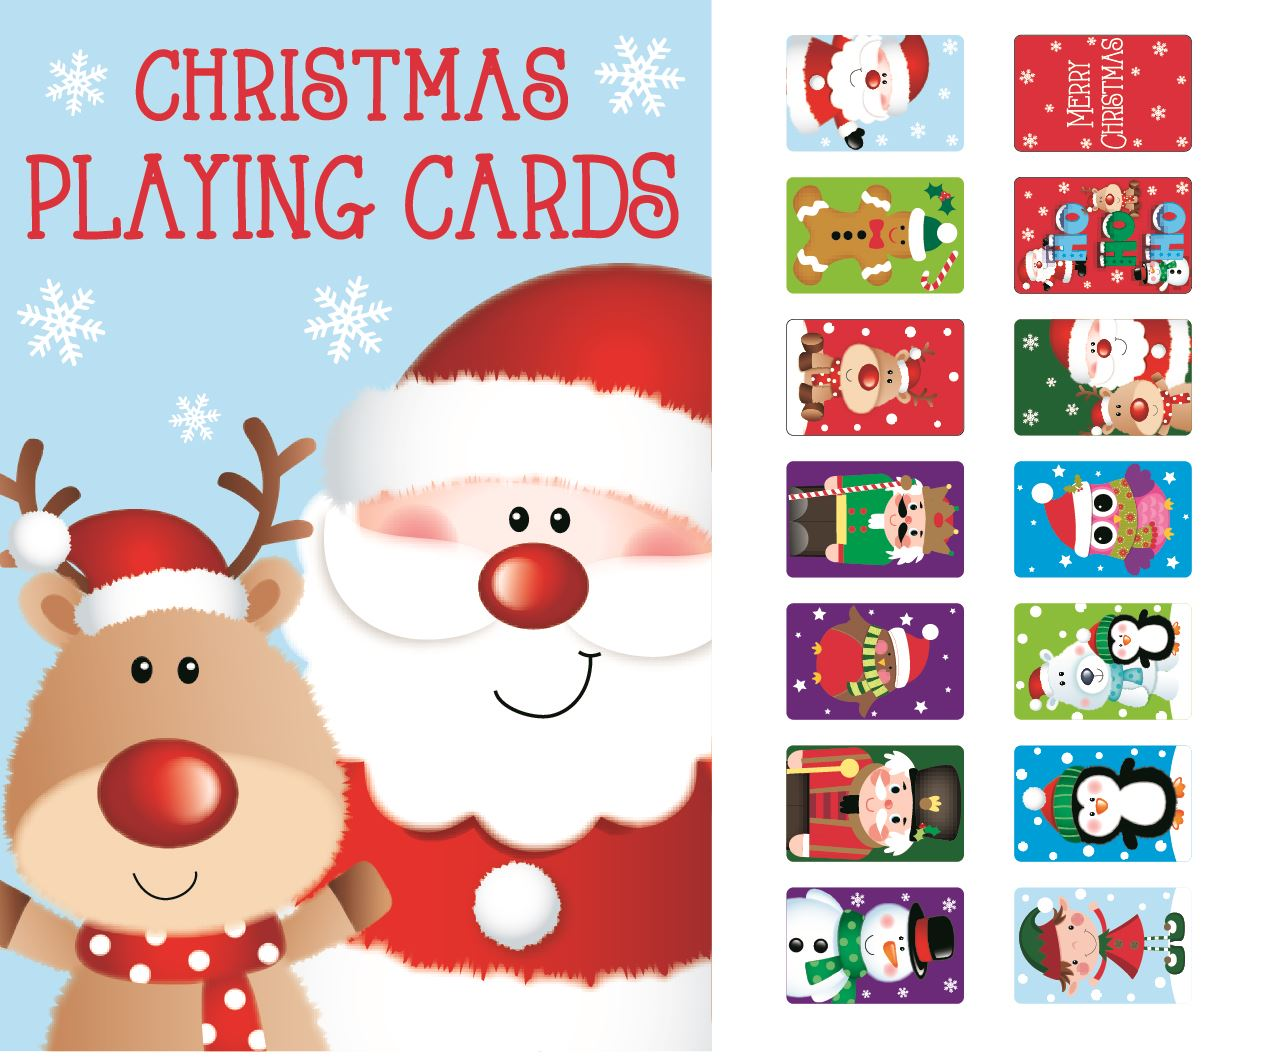 Christmas Toys Cards : Child christmas playing cards stocking filler snap novelty